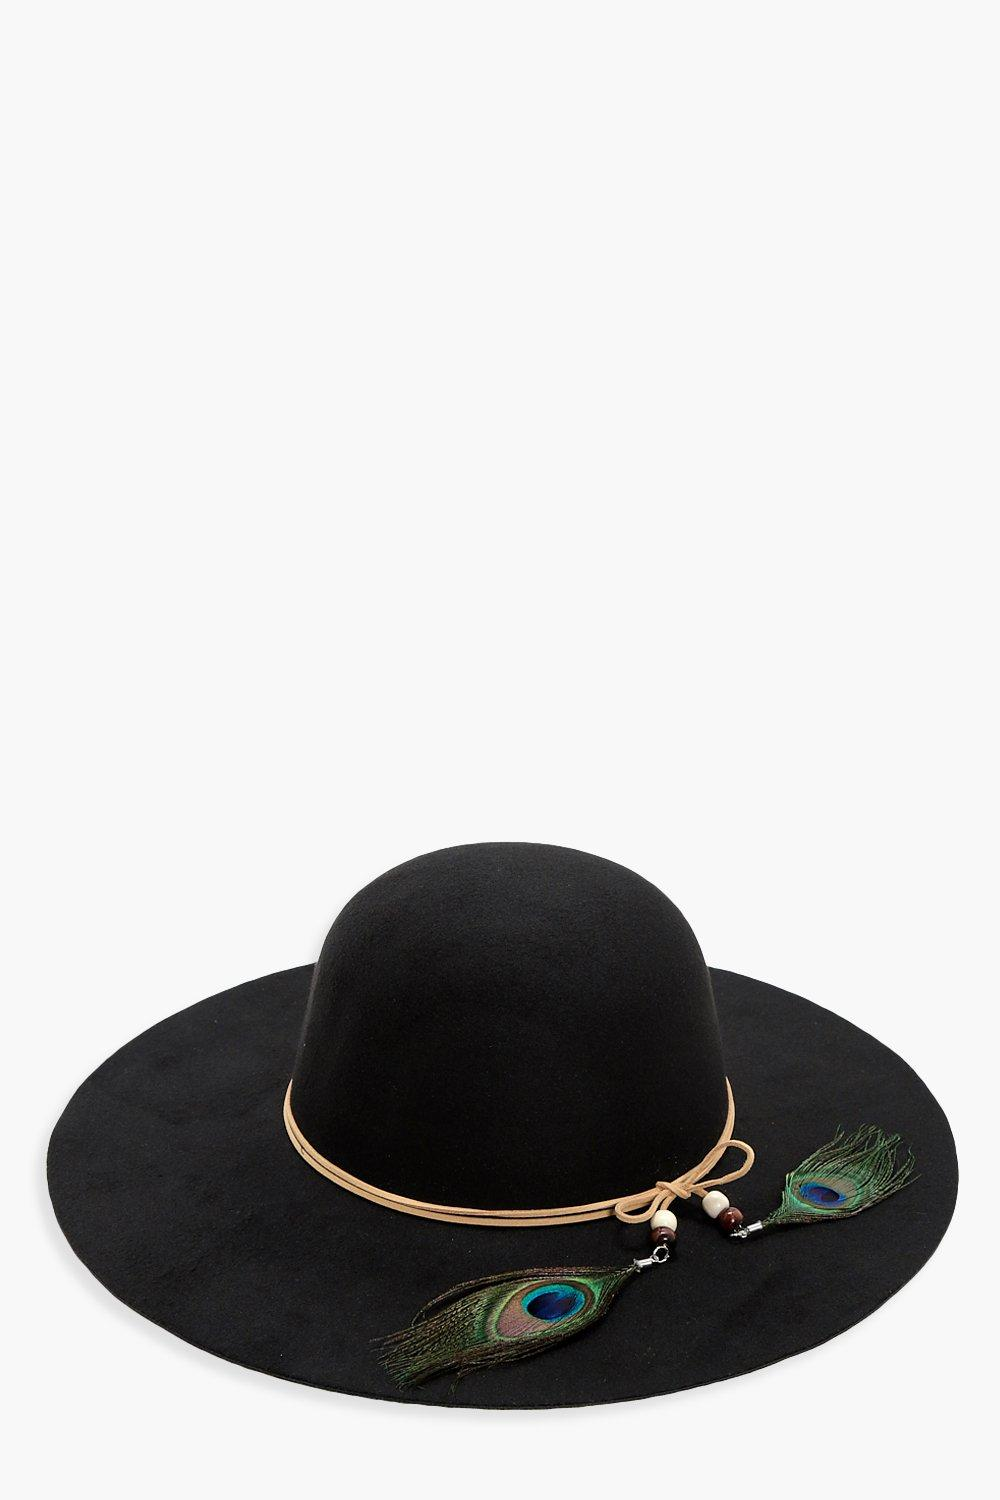 Peacock Trim Floppy Hat - black - Skye Peacock Tri